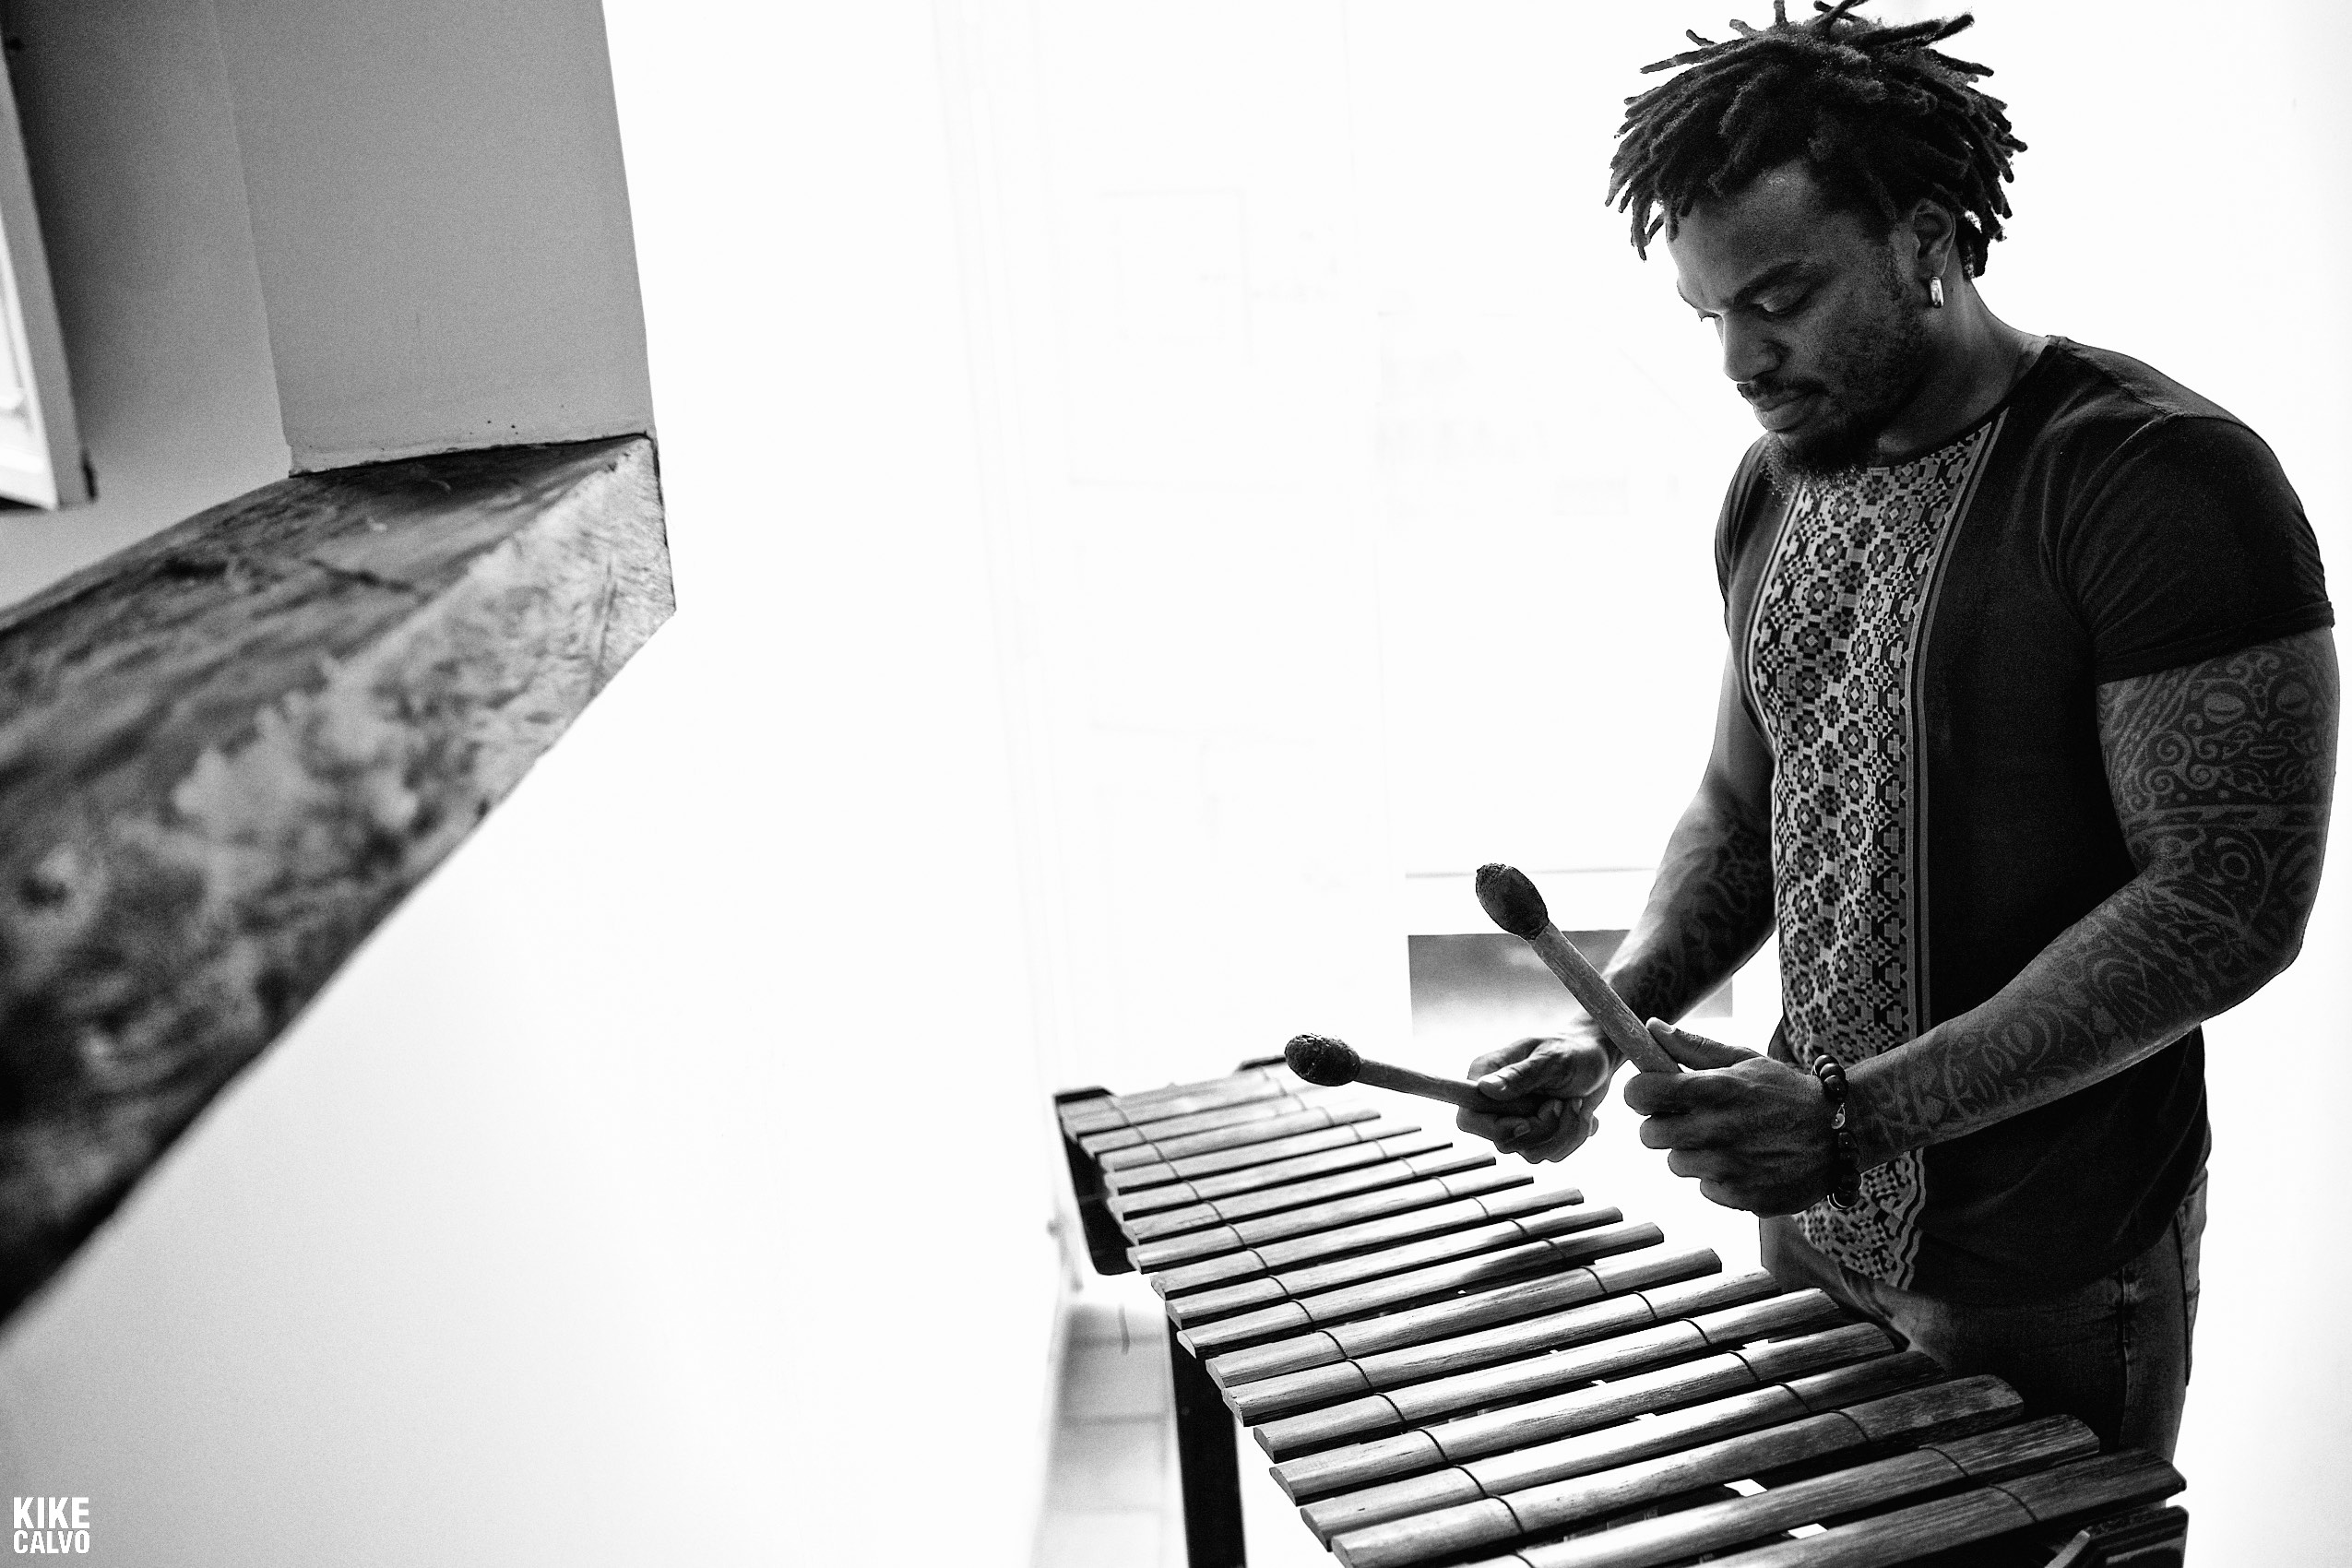 Colombian Marimba Player Esteban Copete